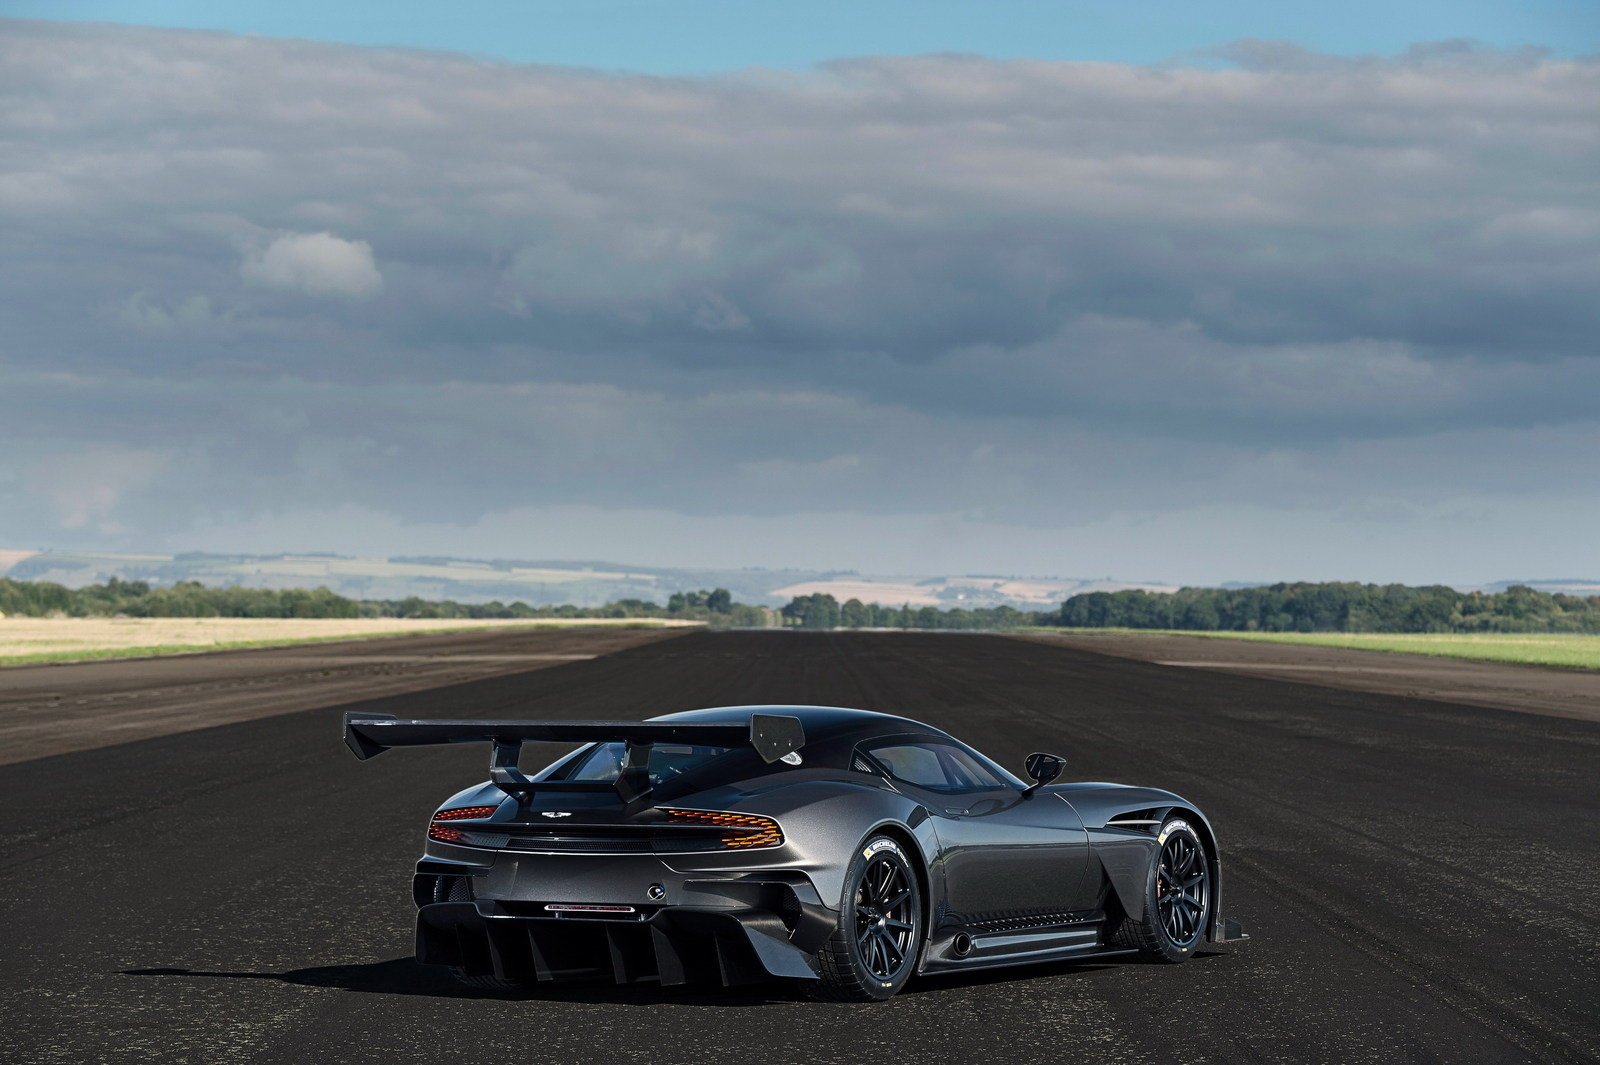 2016 aston martin vulcan picture 649154 car review top speed. Black Bedroom Furniture Sets. Home Design Ideas